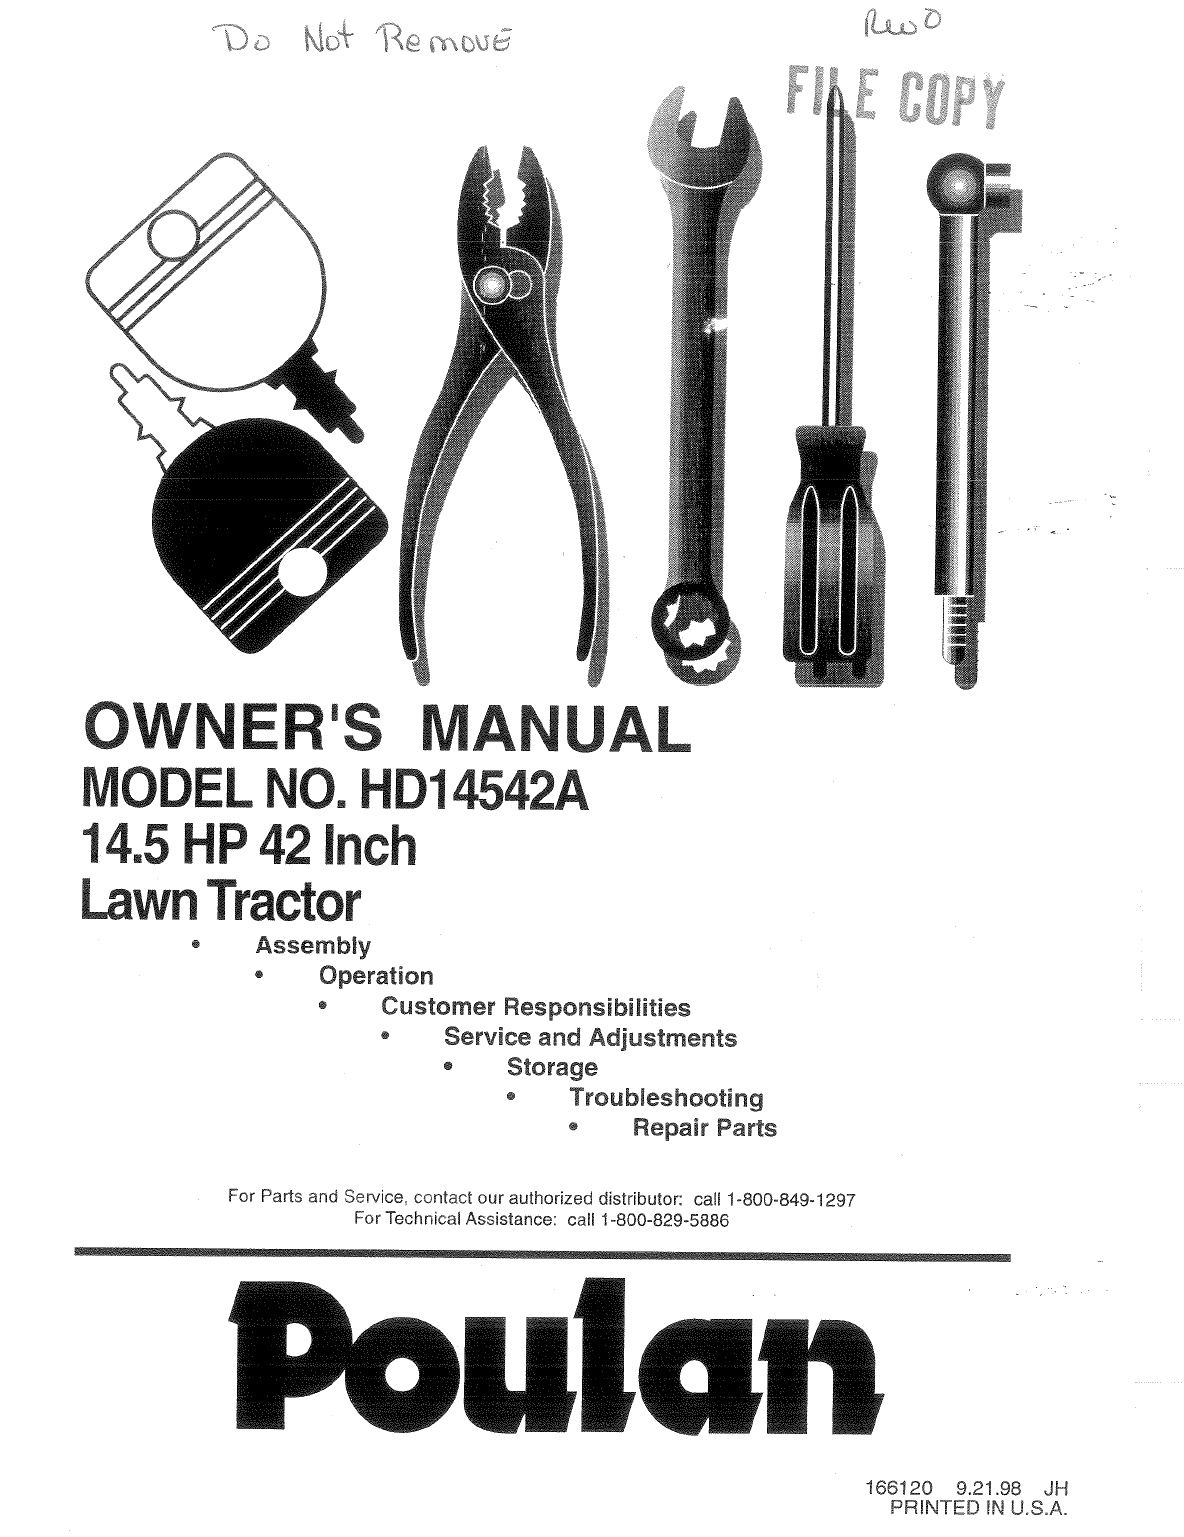 Poulan Lawn Mower User Guide